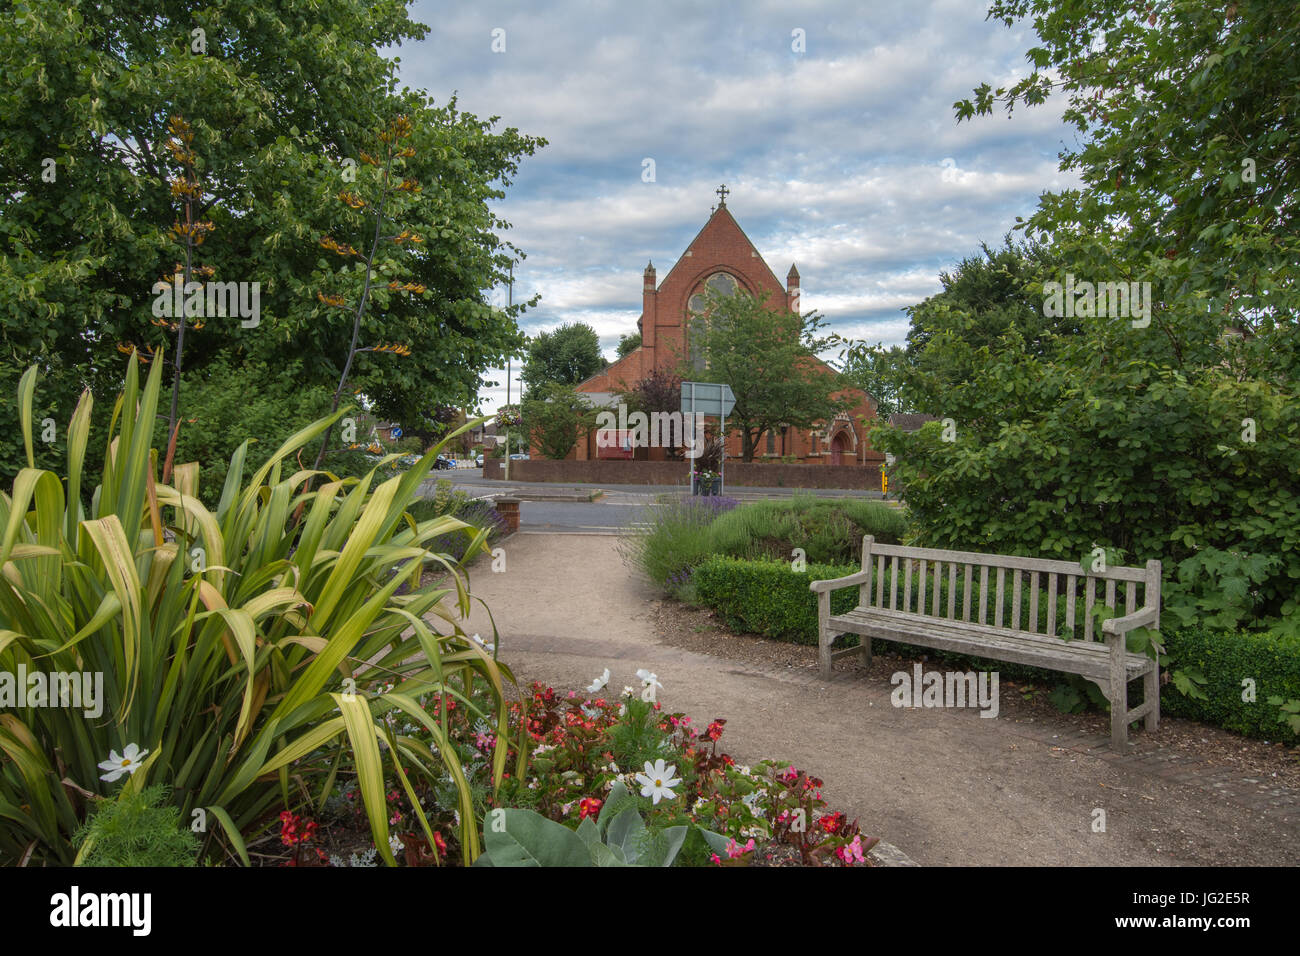 St Mark's Church in Farnborough, Hampshire, UK, in summer with flowers in foreground - Stock Image